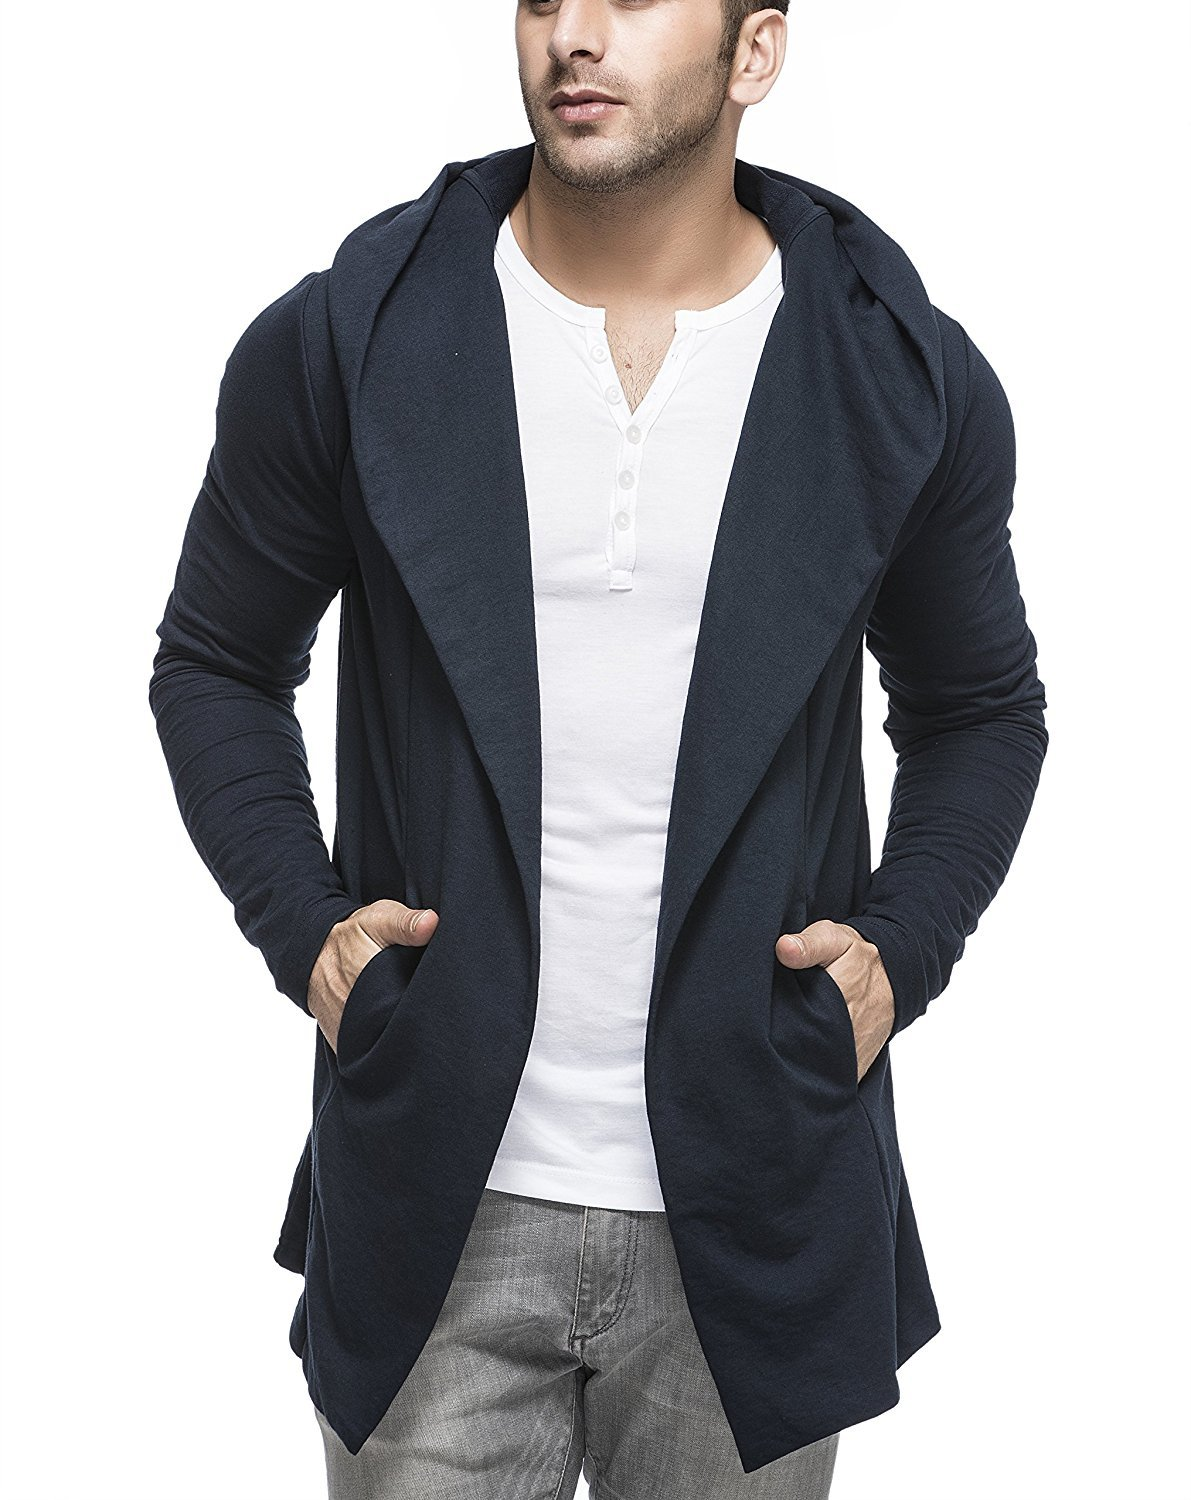 Tinted Men's Cotton Blend Hooded Cardigan (S, Navy)